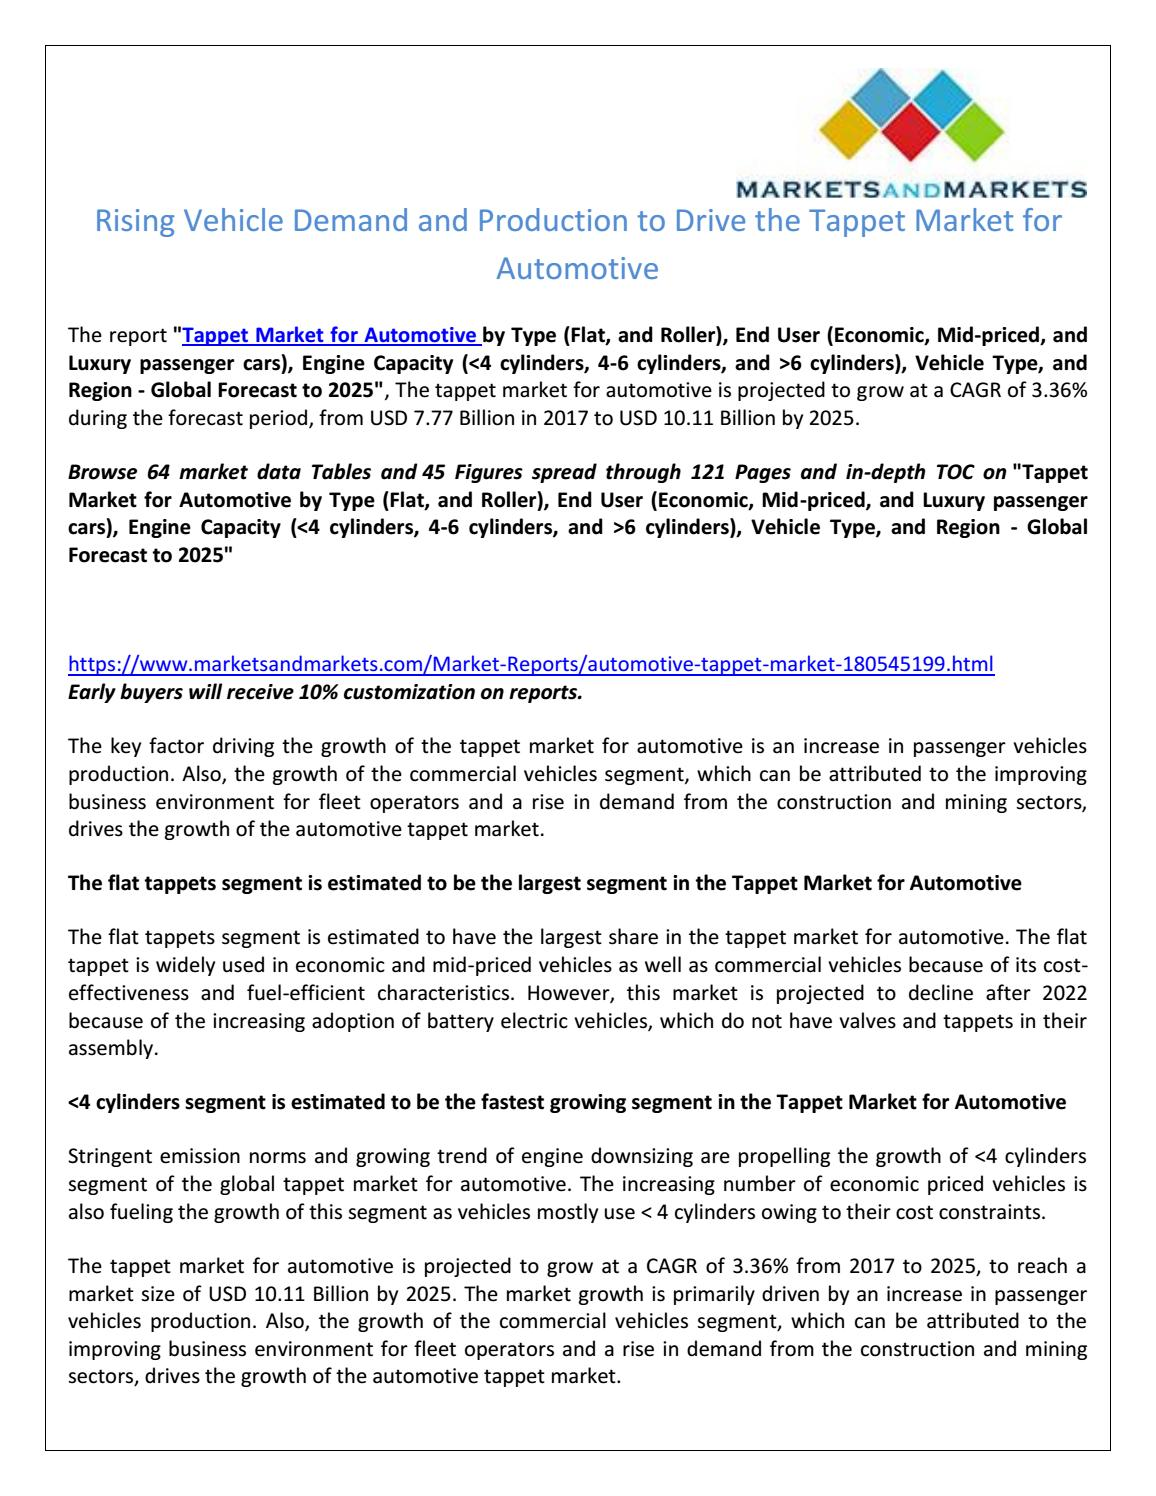 Rising Vehicle Demand and Production to Drive the Tappet Market for